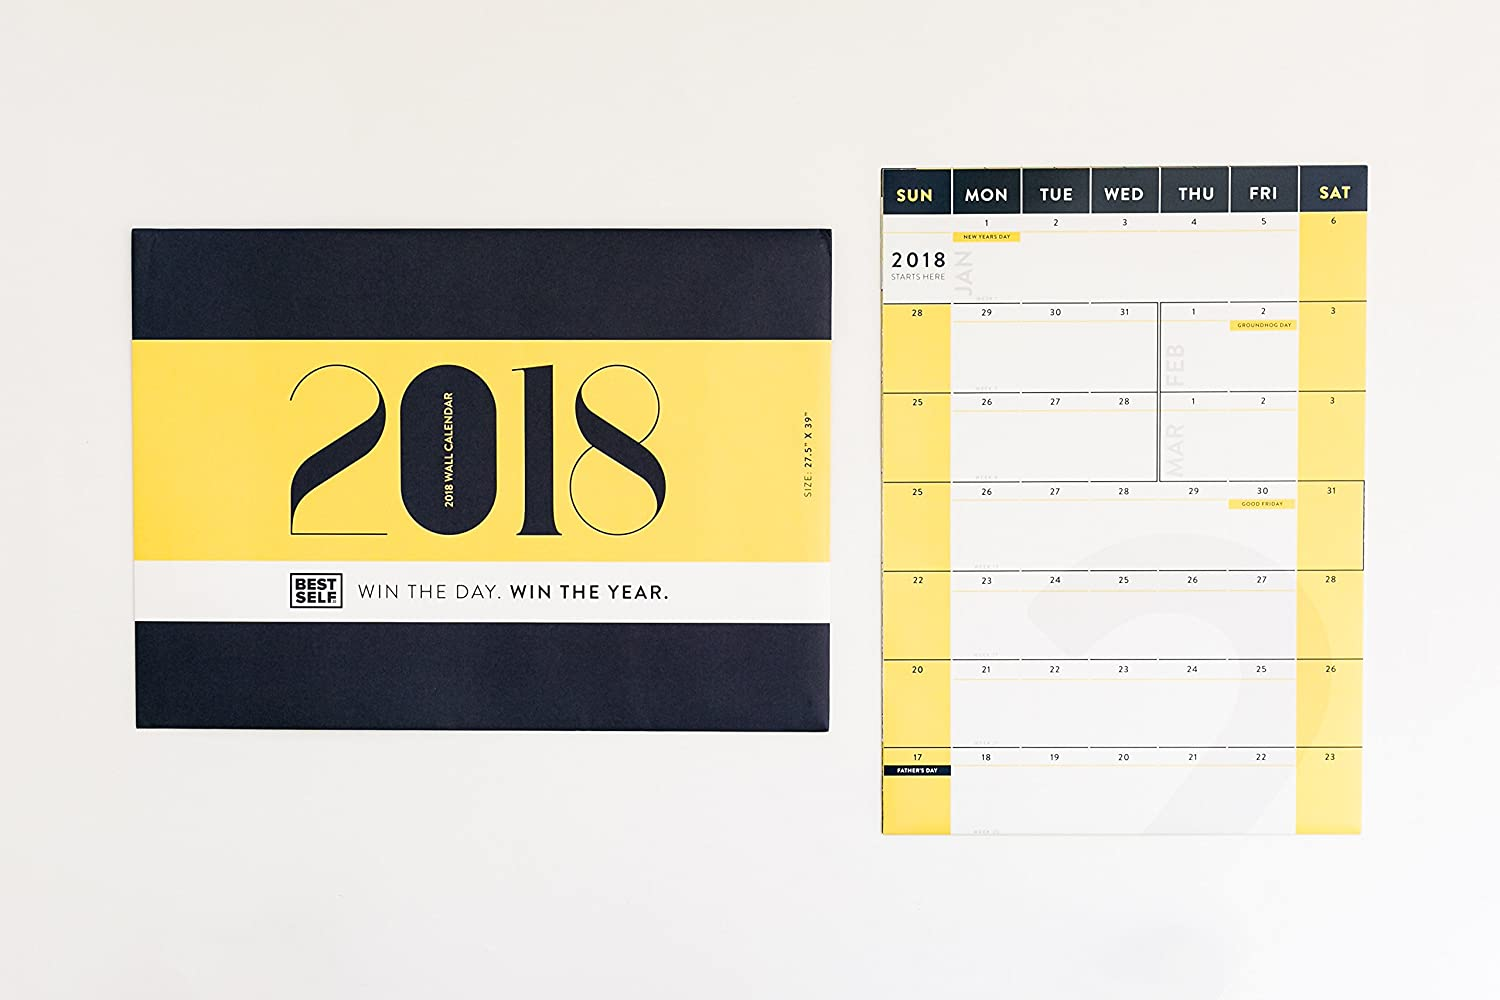 Amazon.com : BestSelf Co. Matte Finish Wall Calendar 2018, Yearly ...